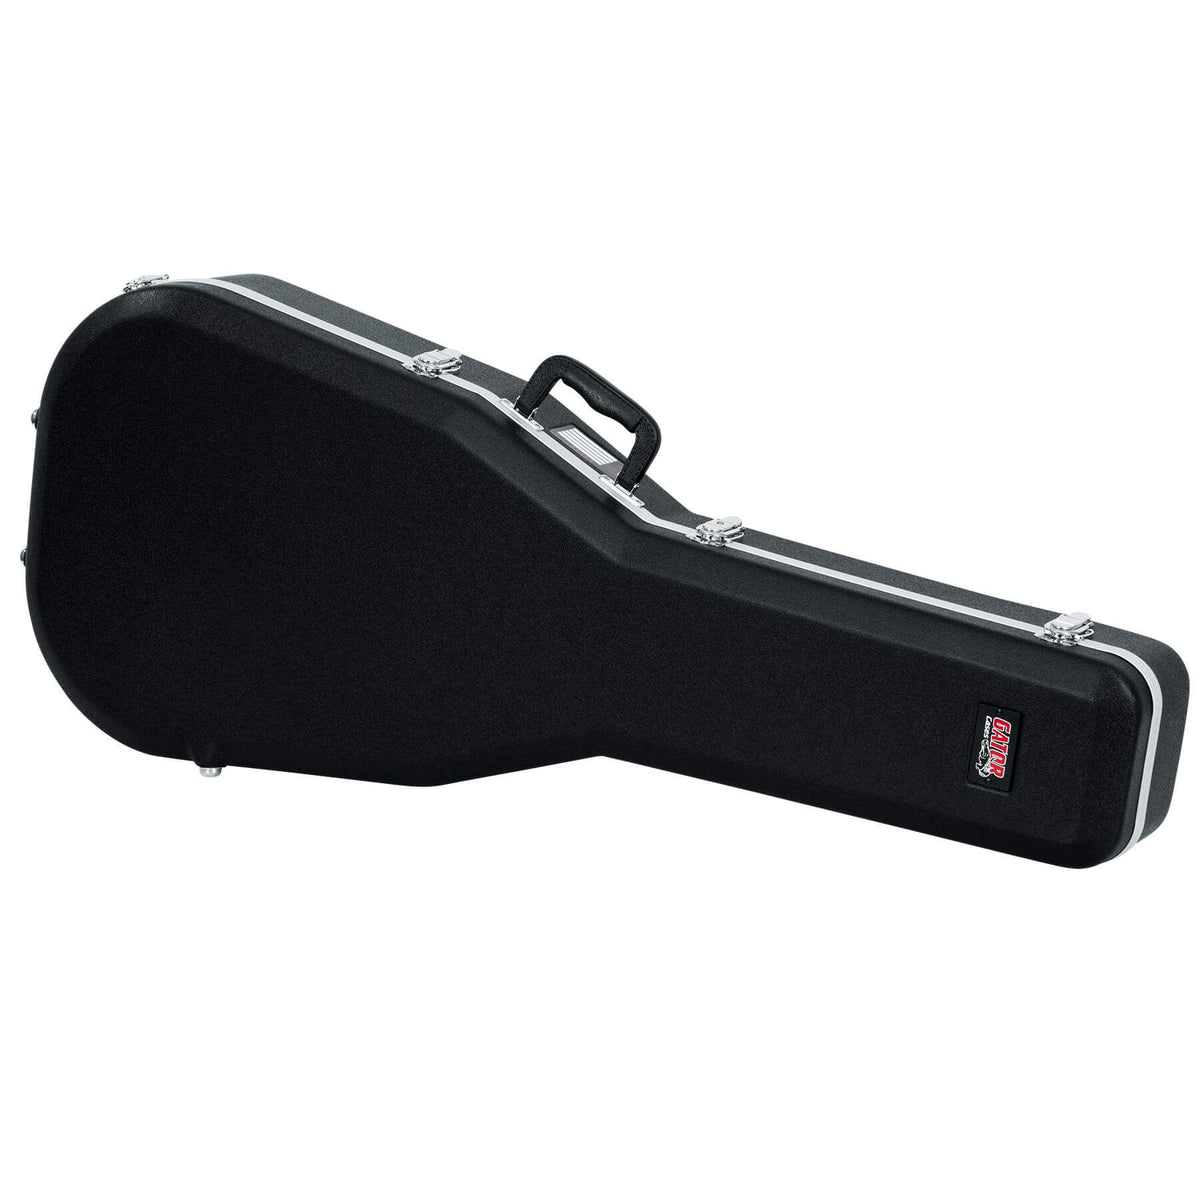 Gator Classical Guitar Case fits Hofner HF12, HF14, HZ27